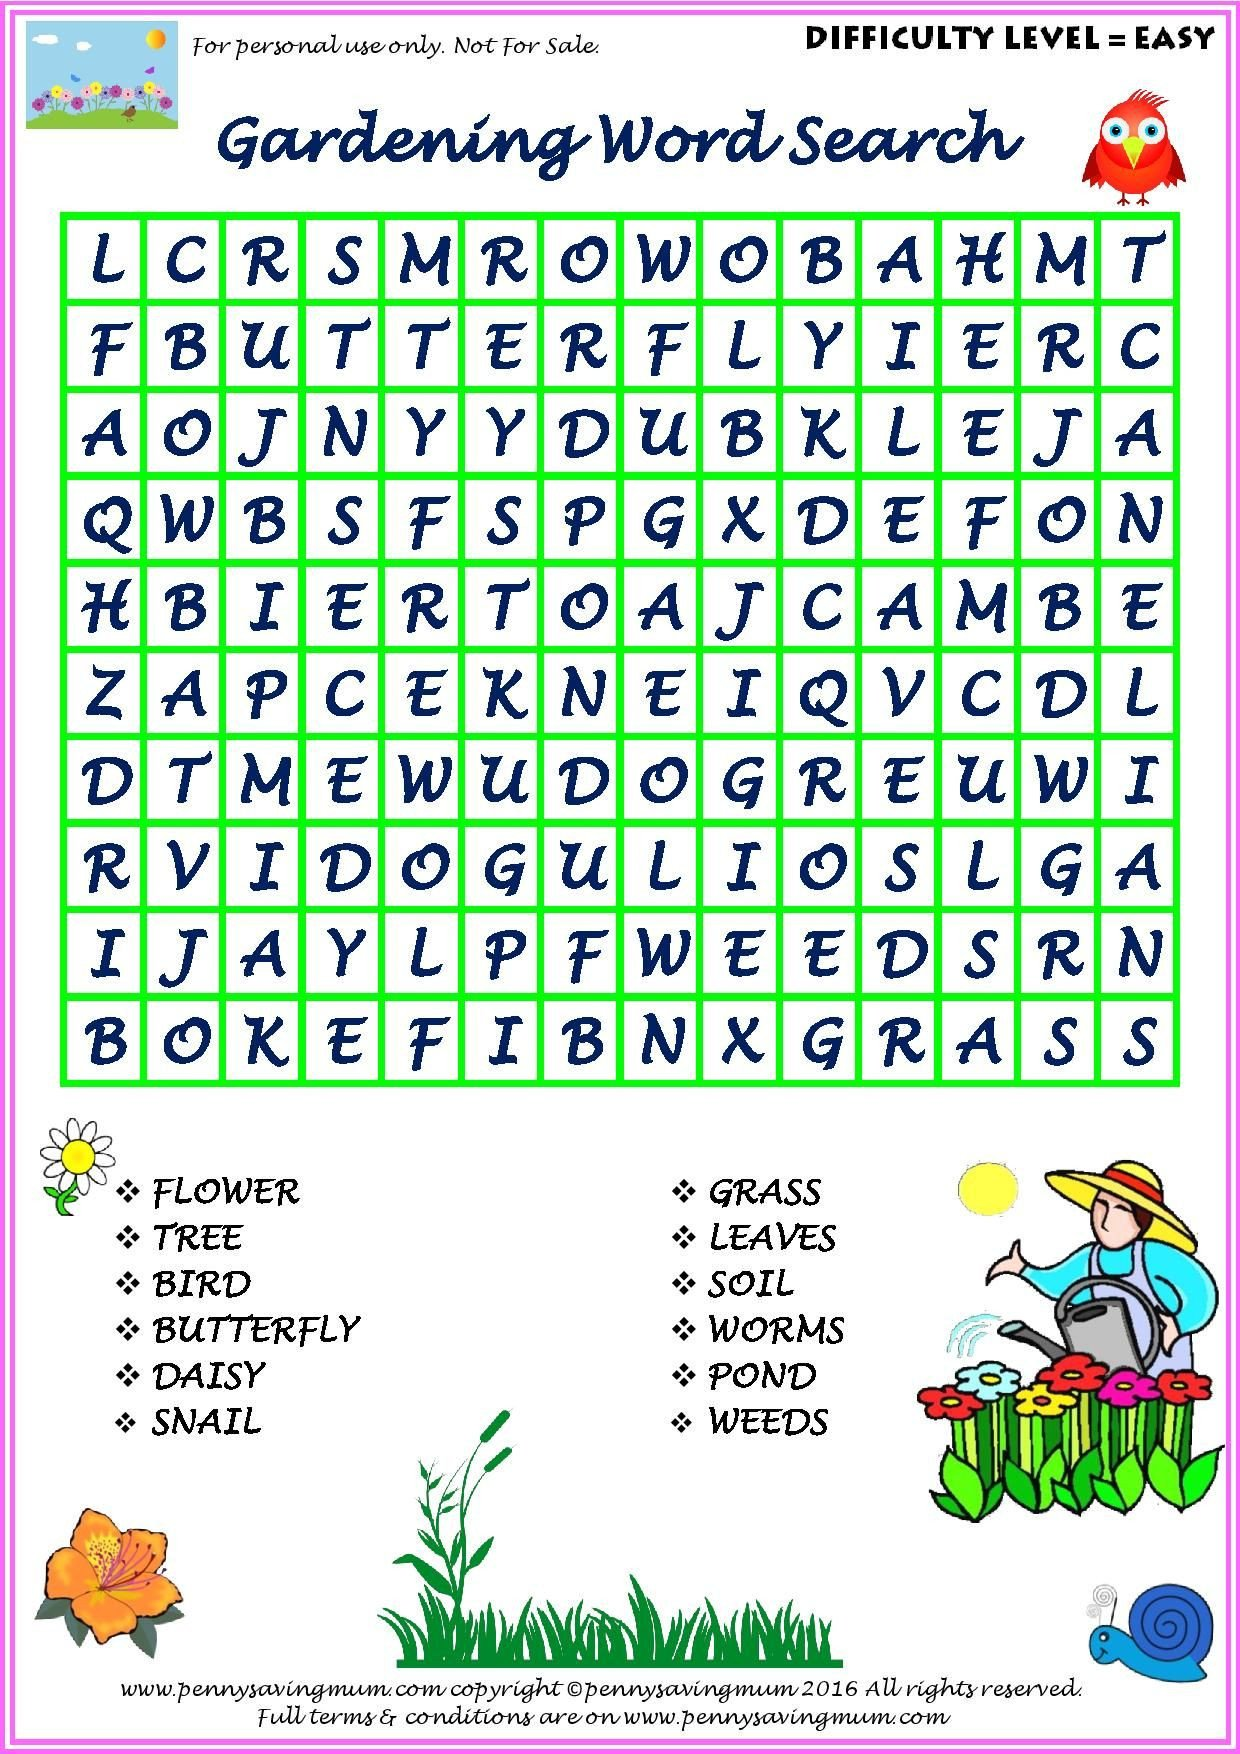 Free Horticulture Worksheets Horticulture Activity Worksheets